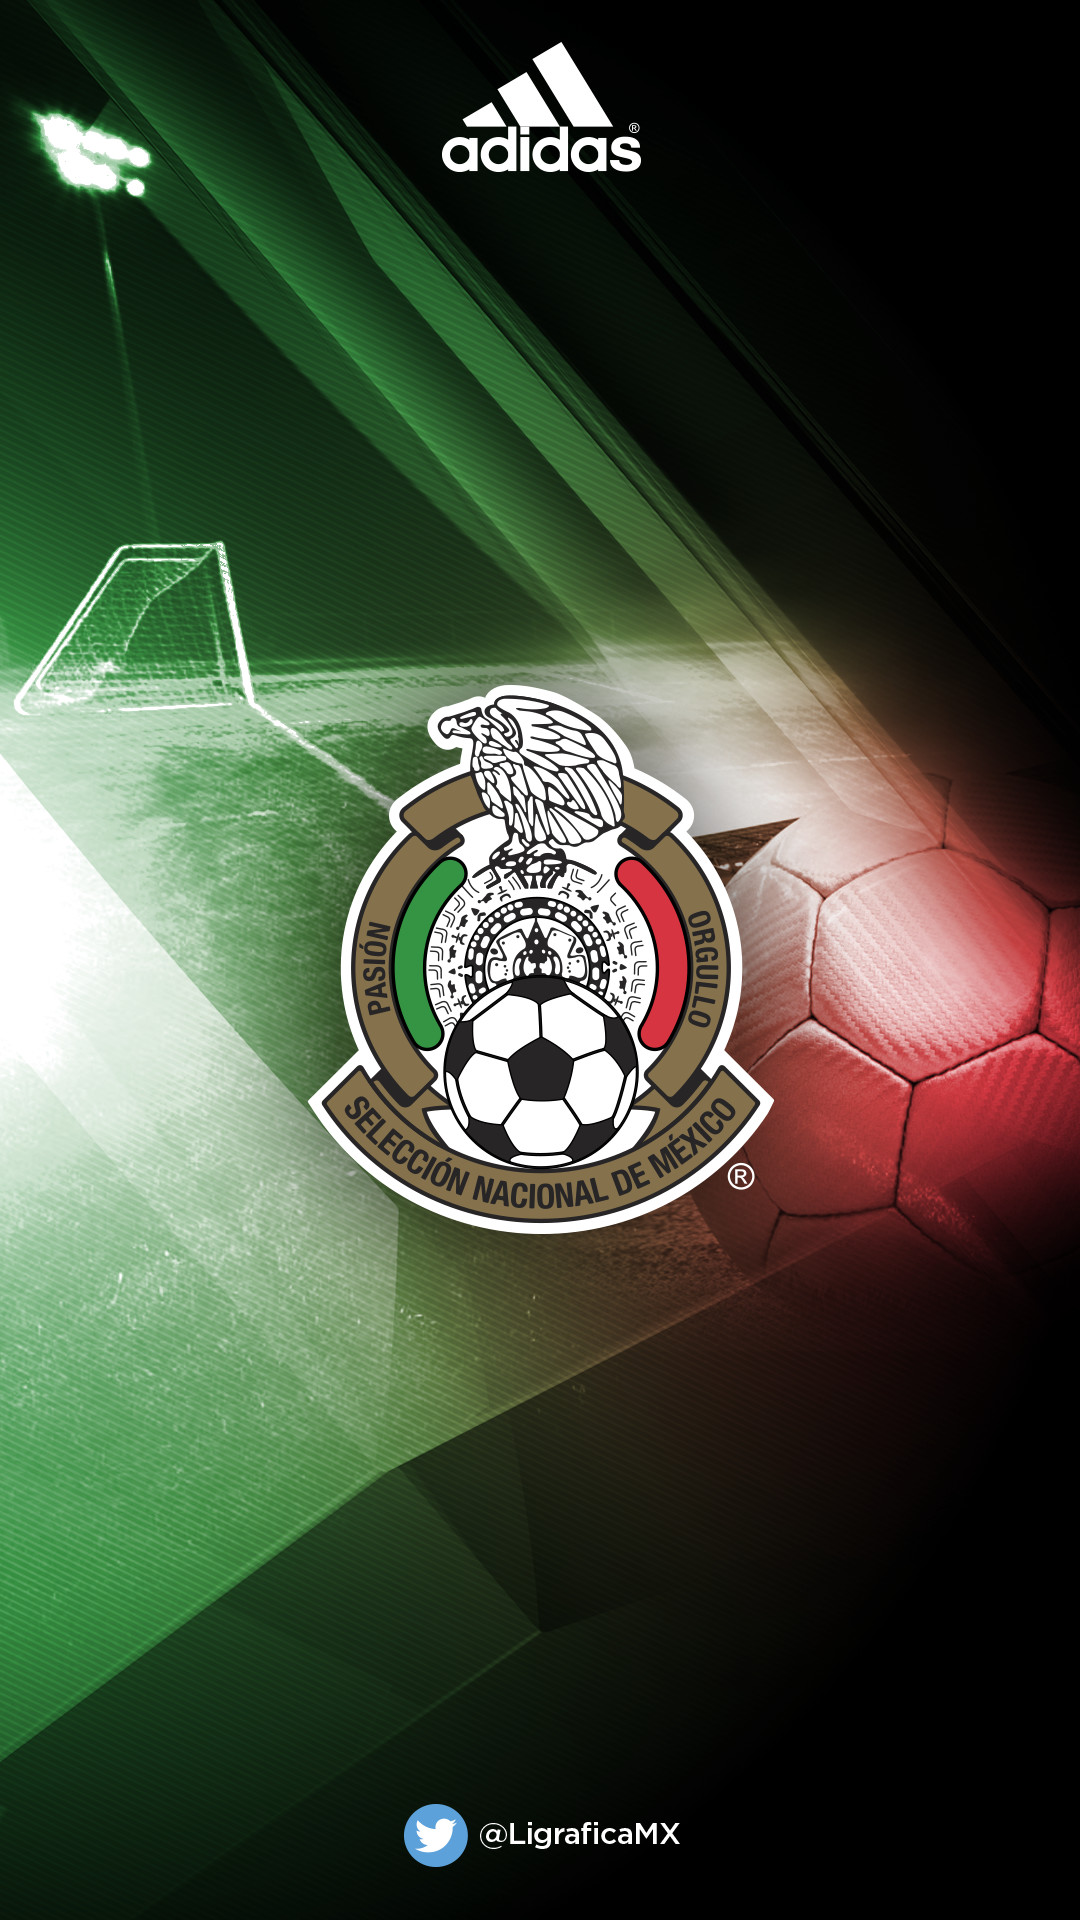 America Soccer Team Wallpaper  58  images  1080x1920 Browse our latest collection of Mexico National Team Wallpapers  contributed and submitted by Darrell Fuentes